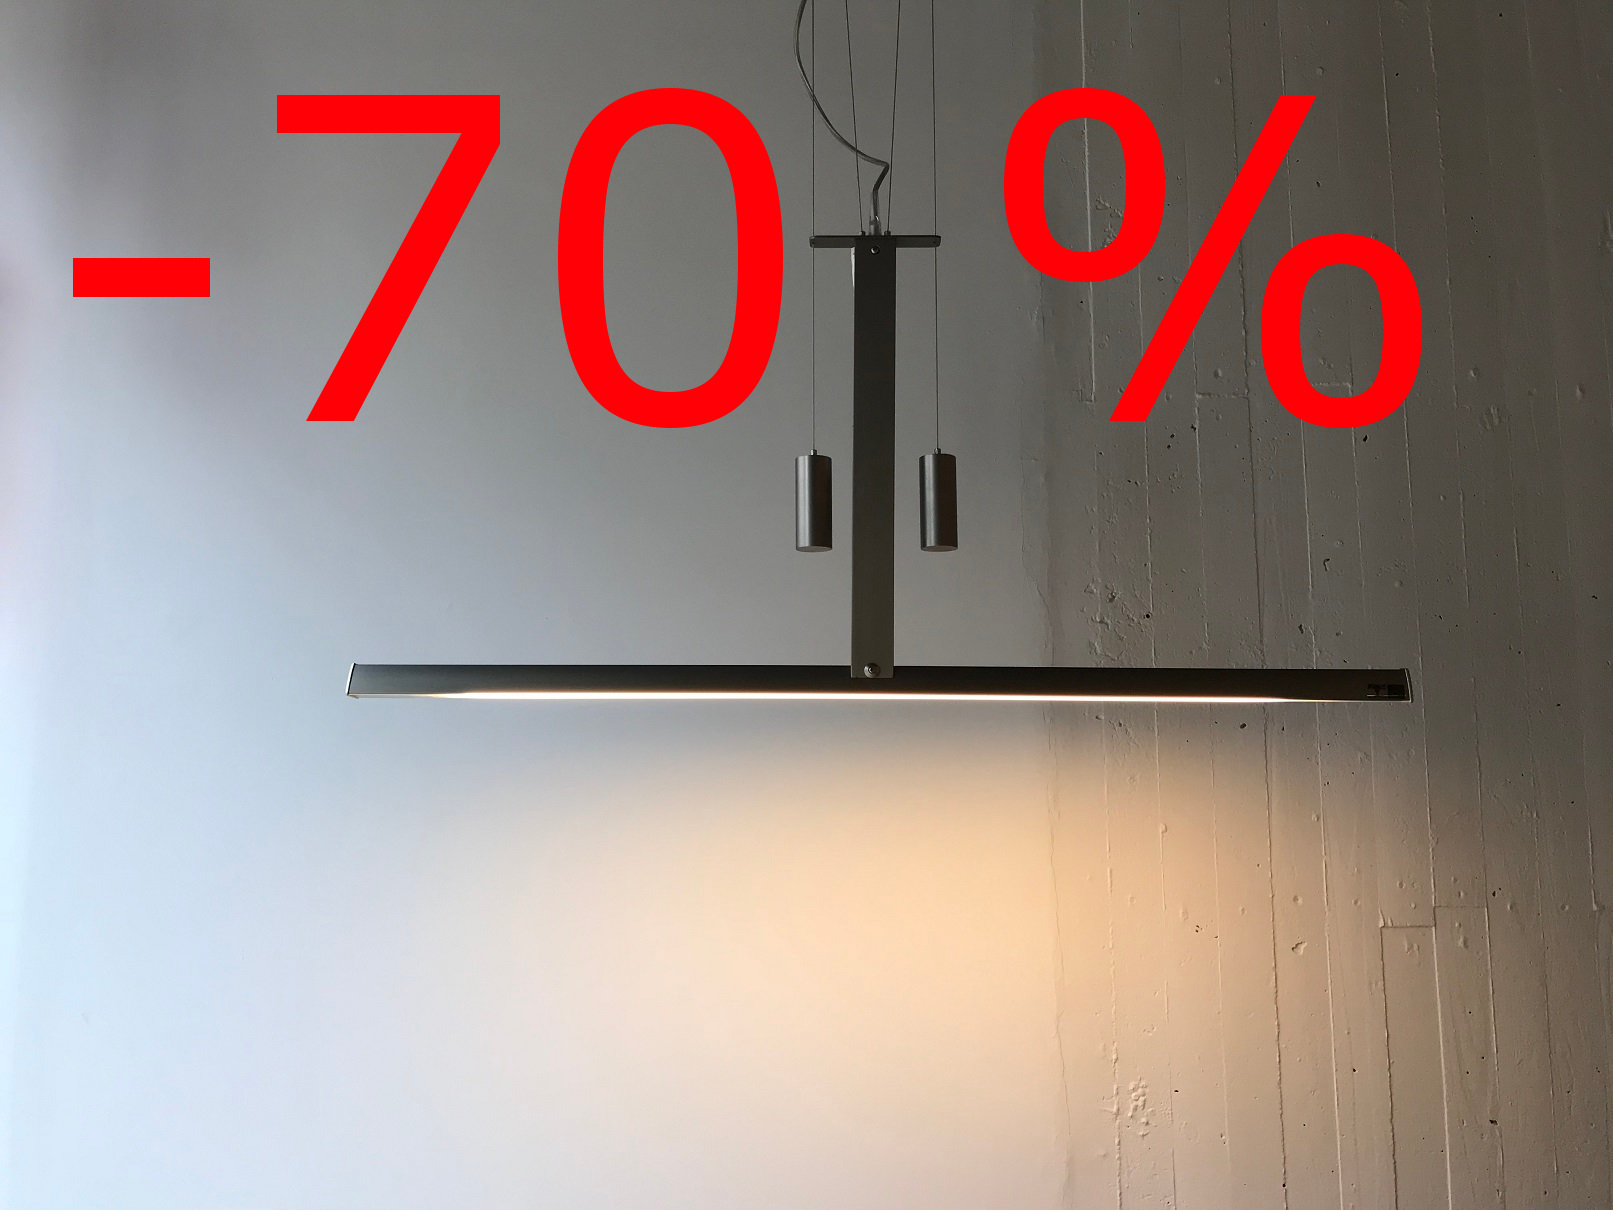 Outlet Pale lampara 1404